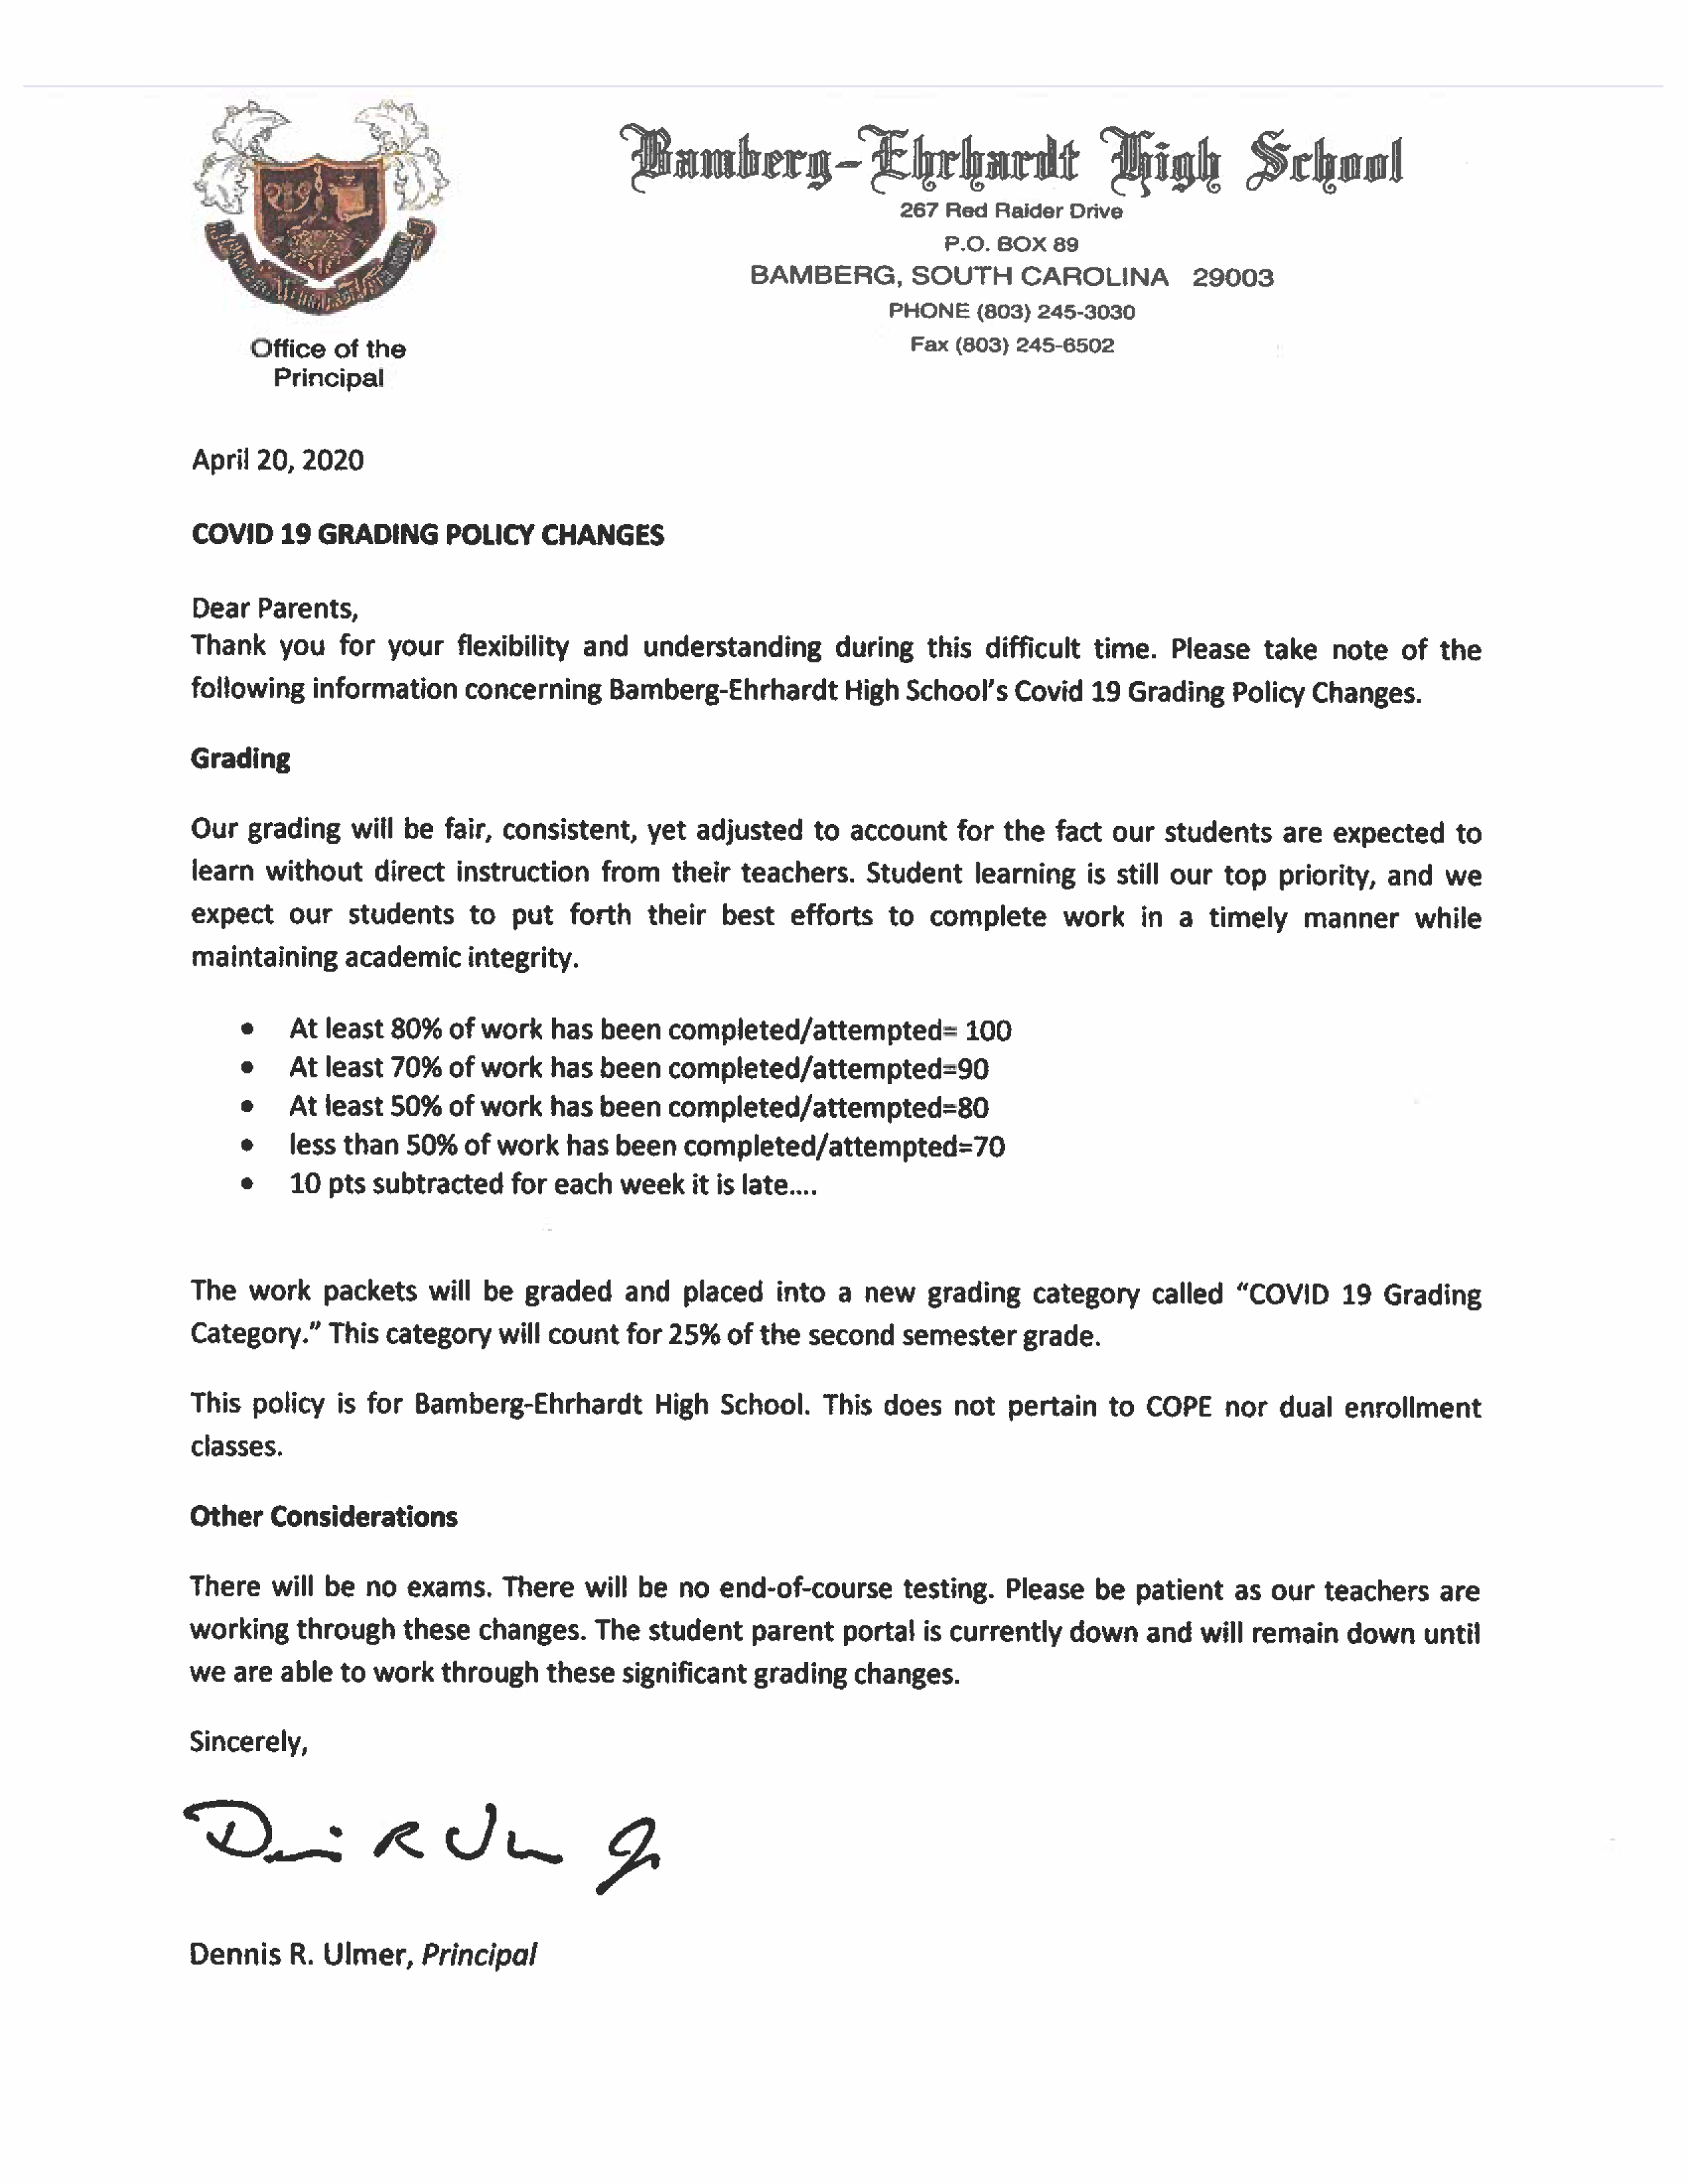 Covid 19 Grading Policy Changes